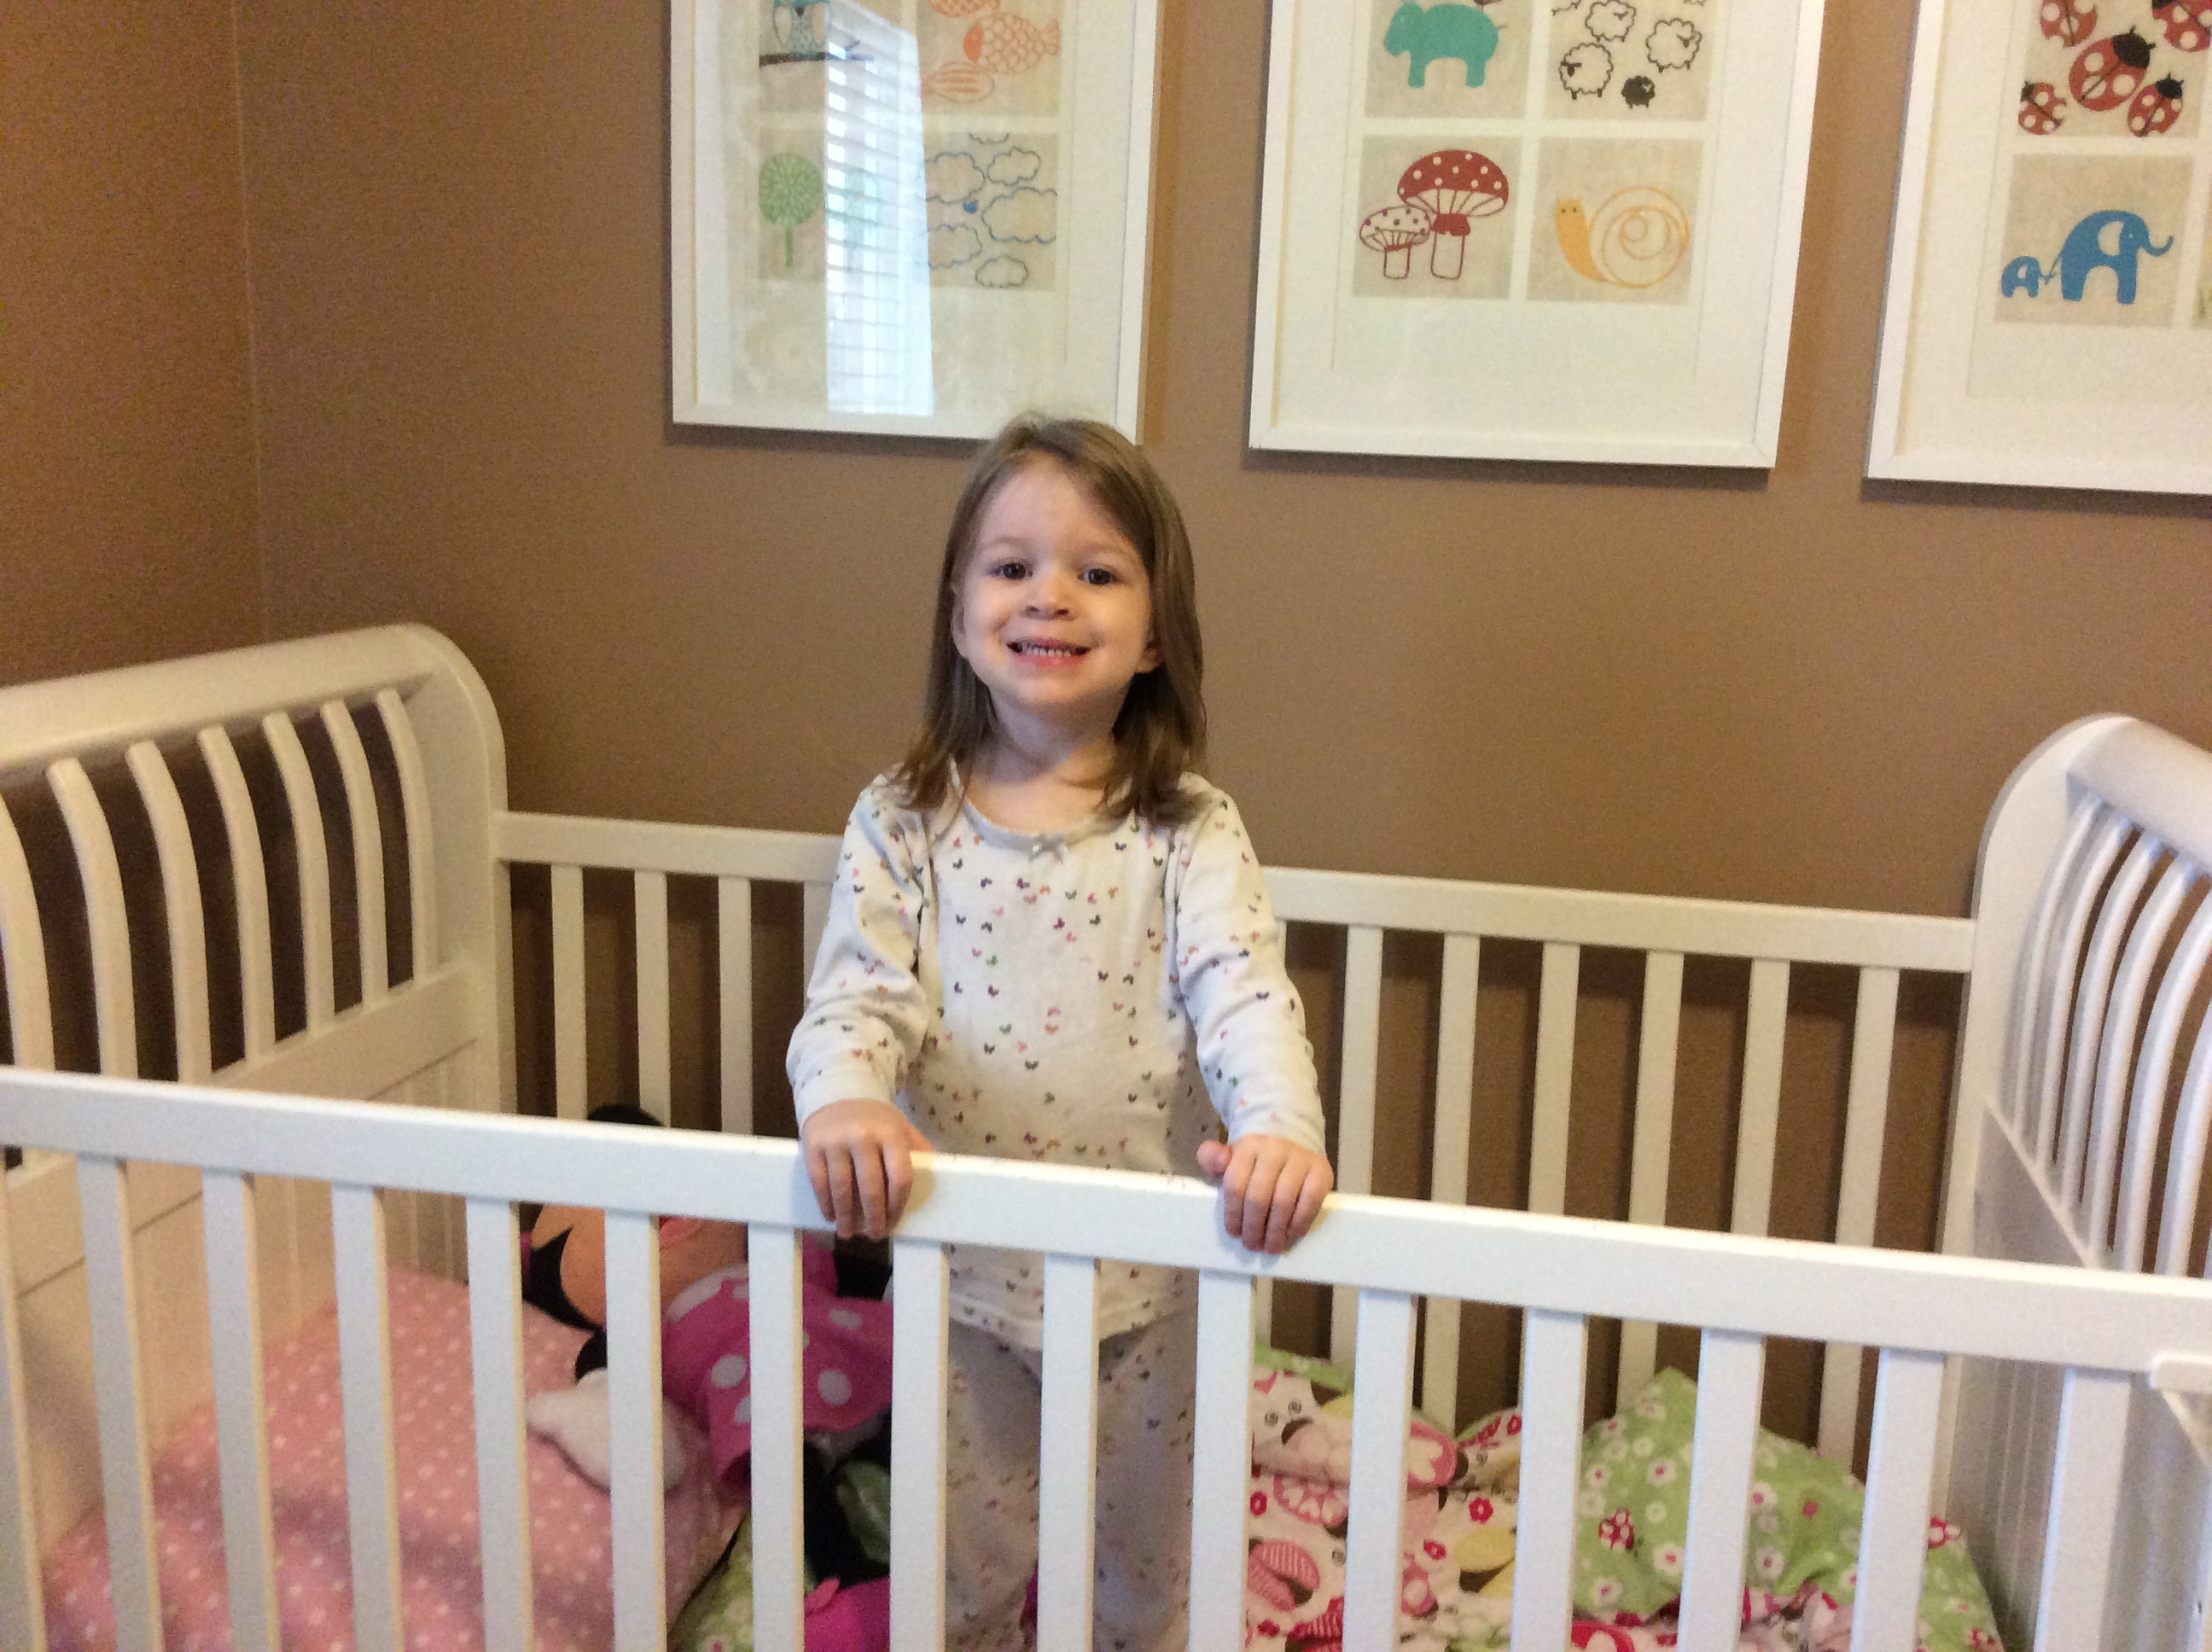 The Crib to Bed Transition - Part 1 - Sleep Consultant ...